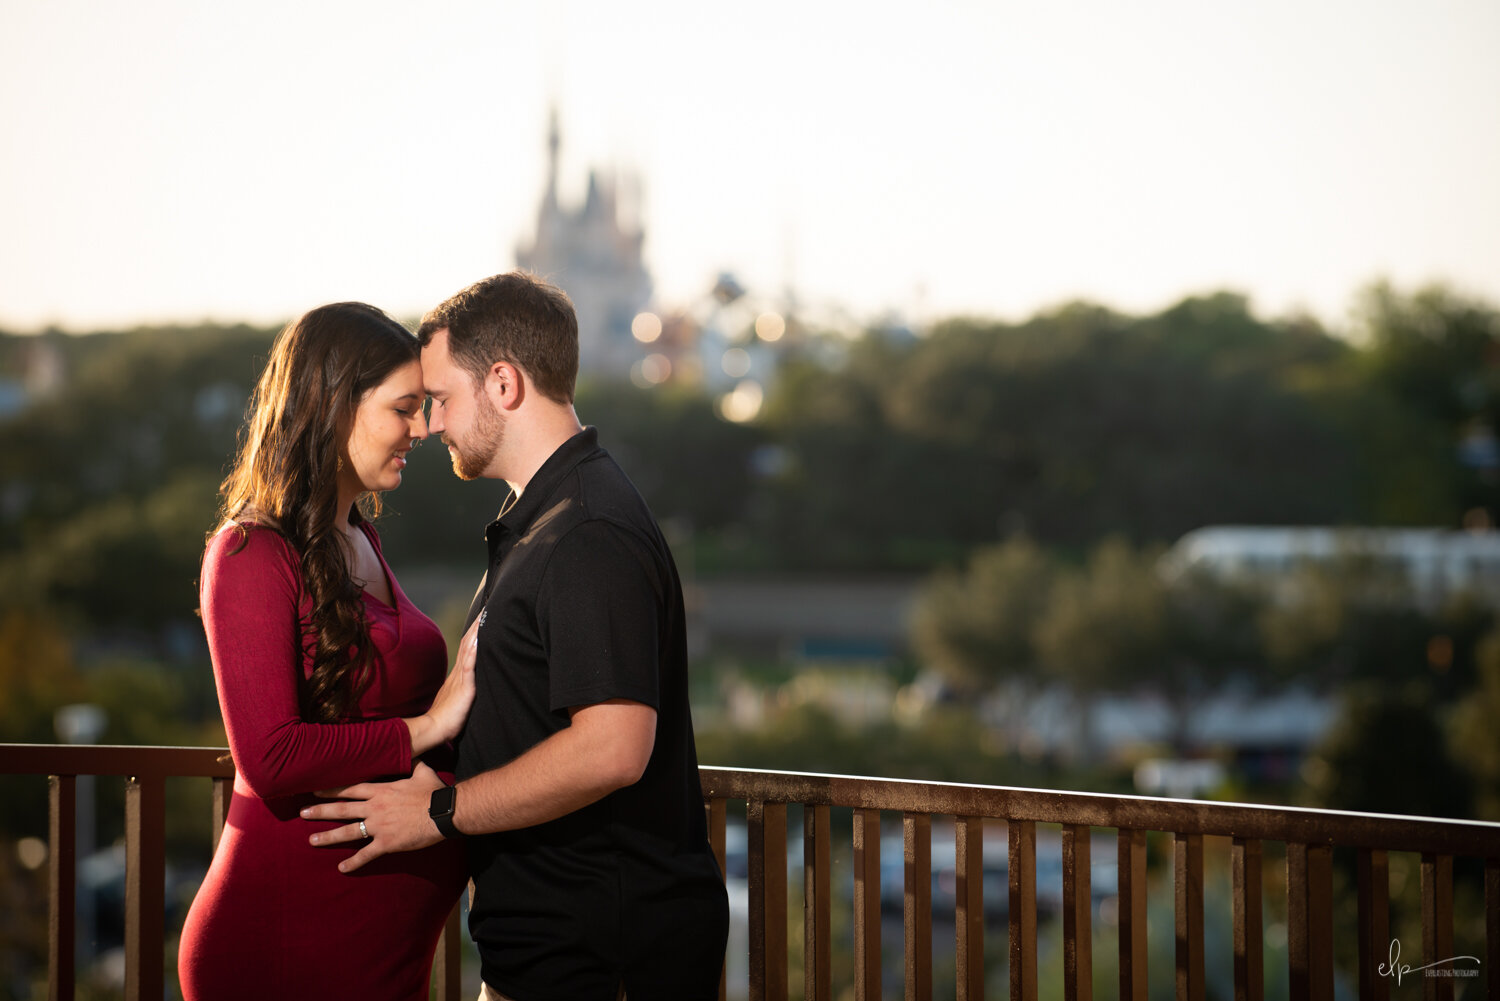 Maternity Portrait Session At Disney's Contemporary Resort